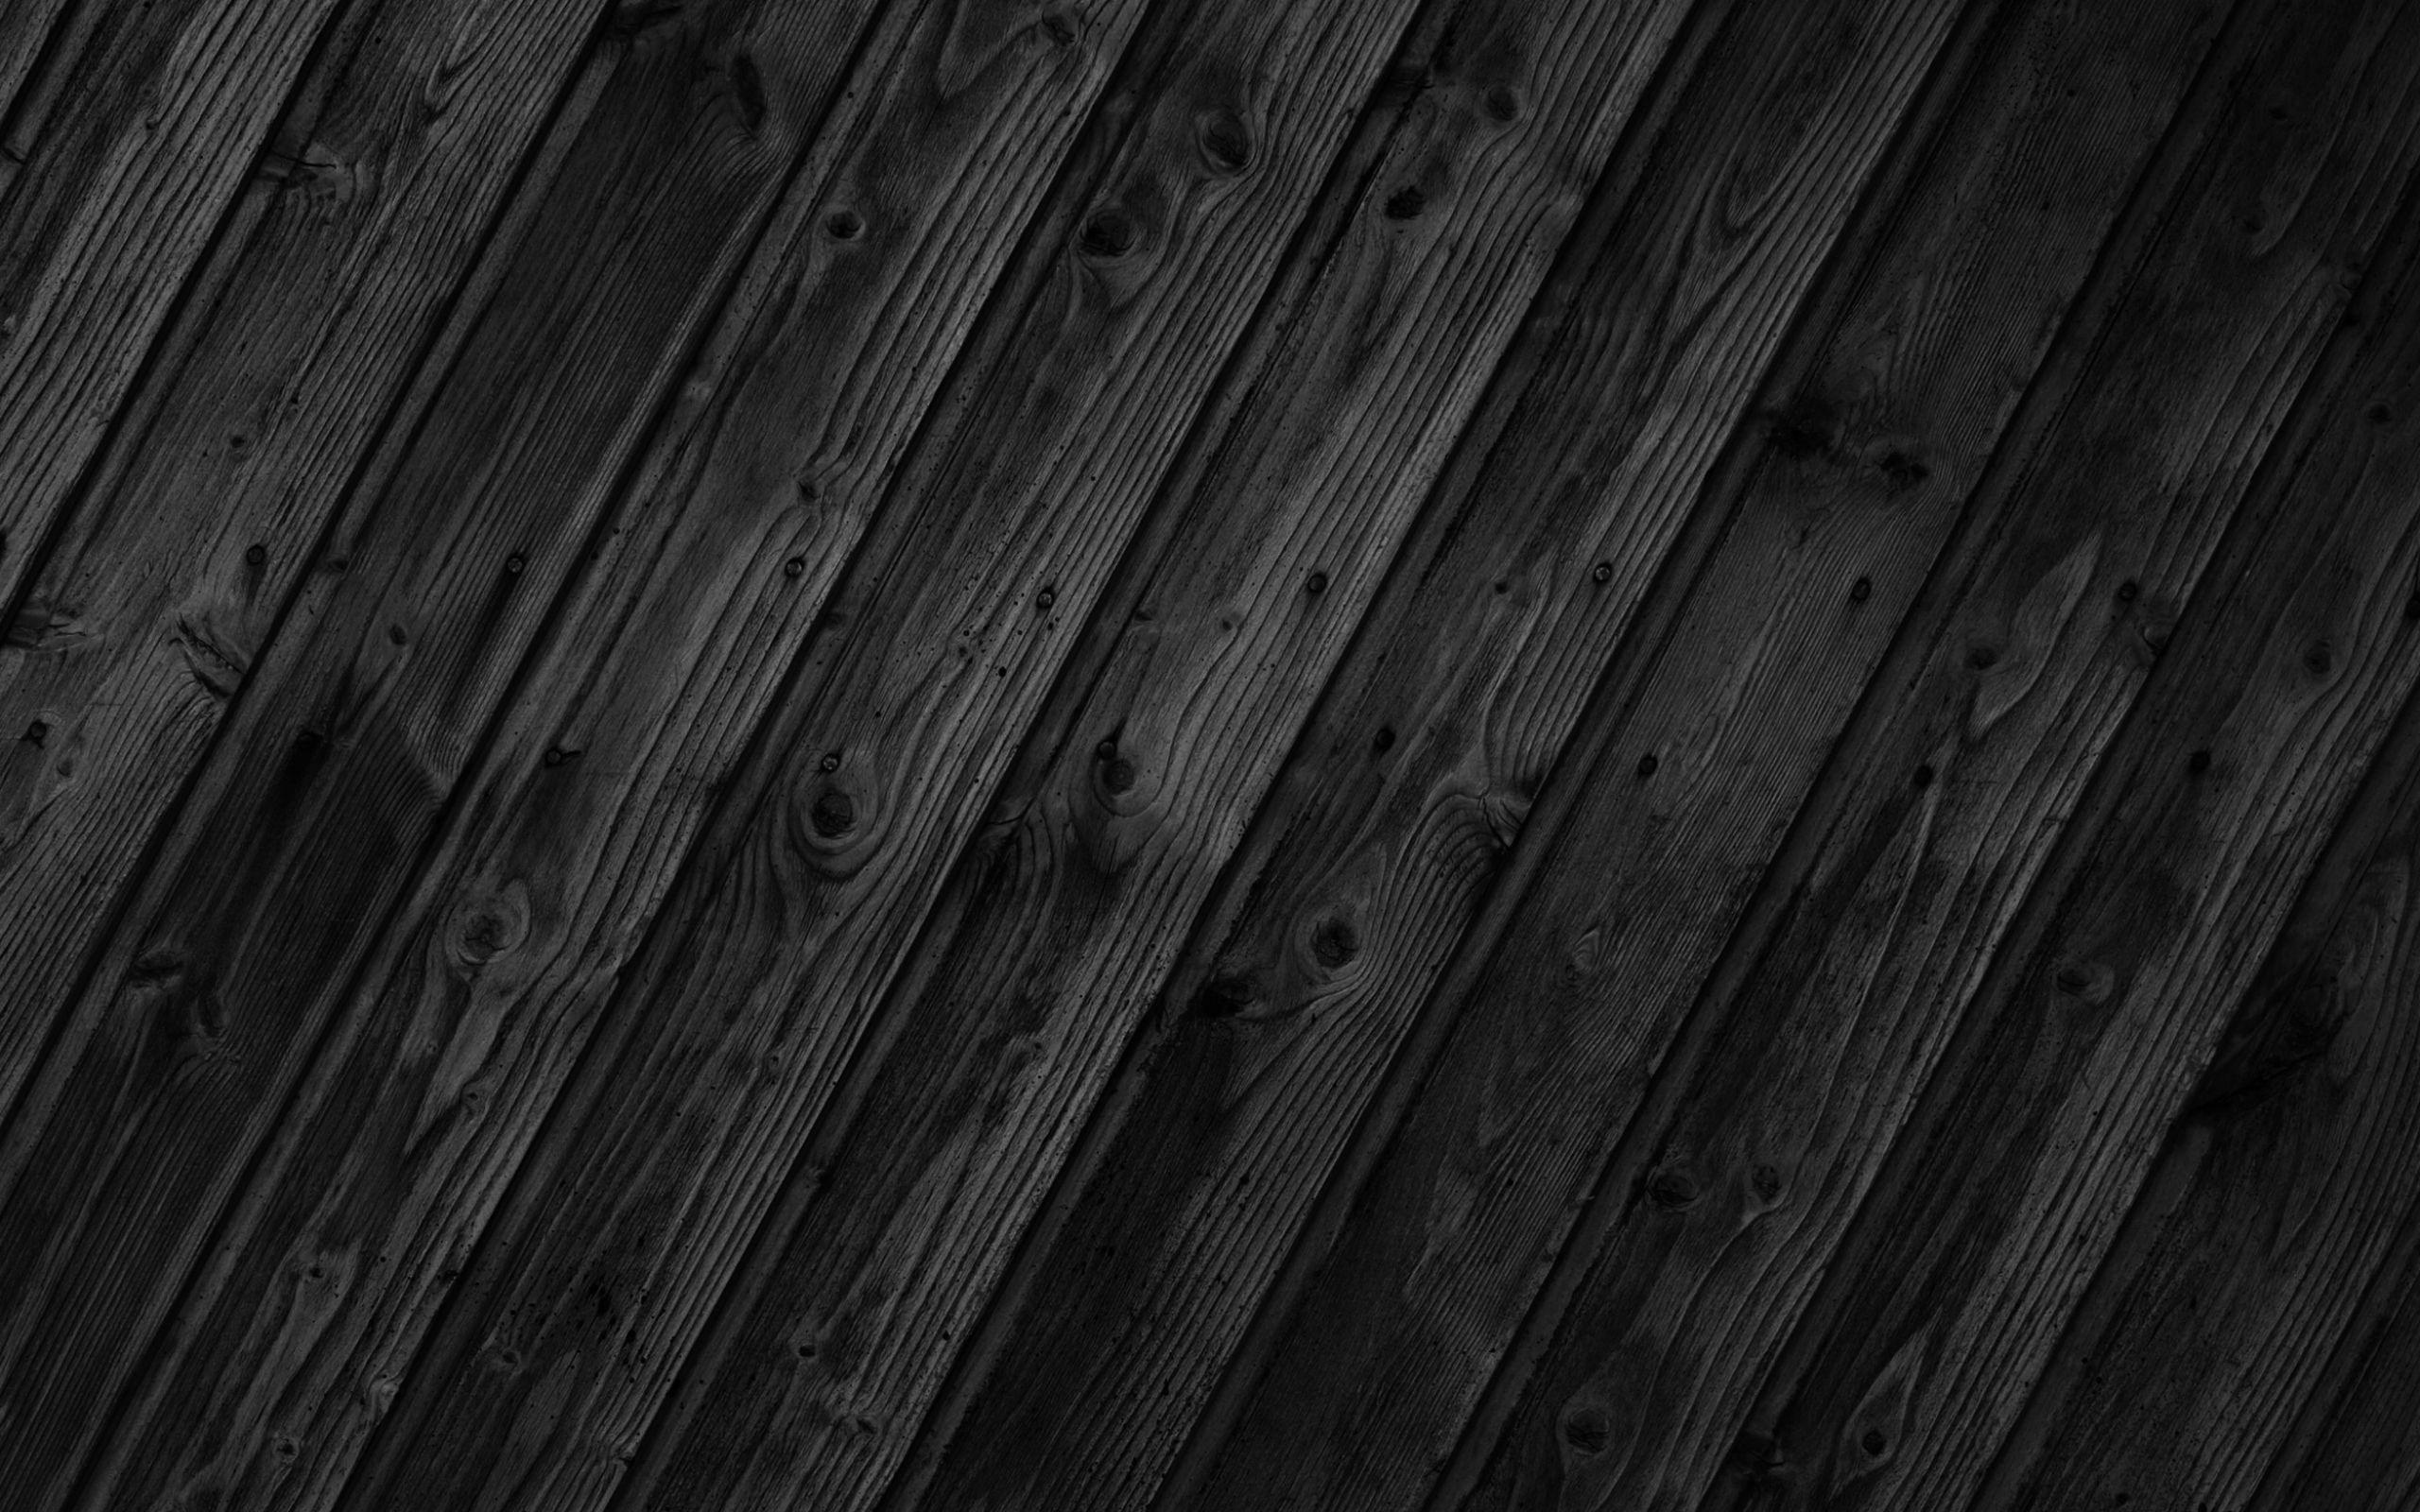 Pin By Ilikewallpaper Ios Wallpaper On Ipad Wallpapers: Stars Pattern Black And White Ipad Air Wallpaper